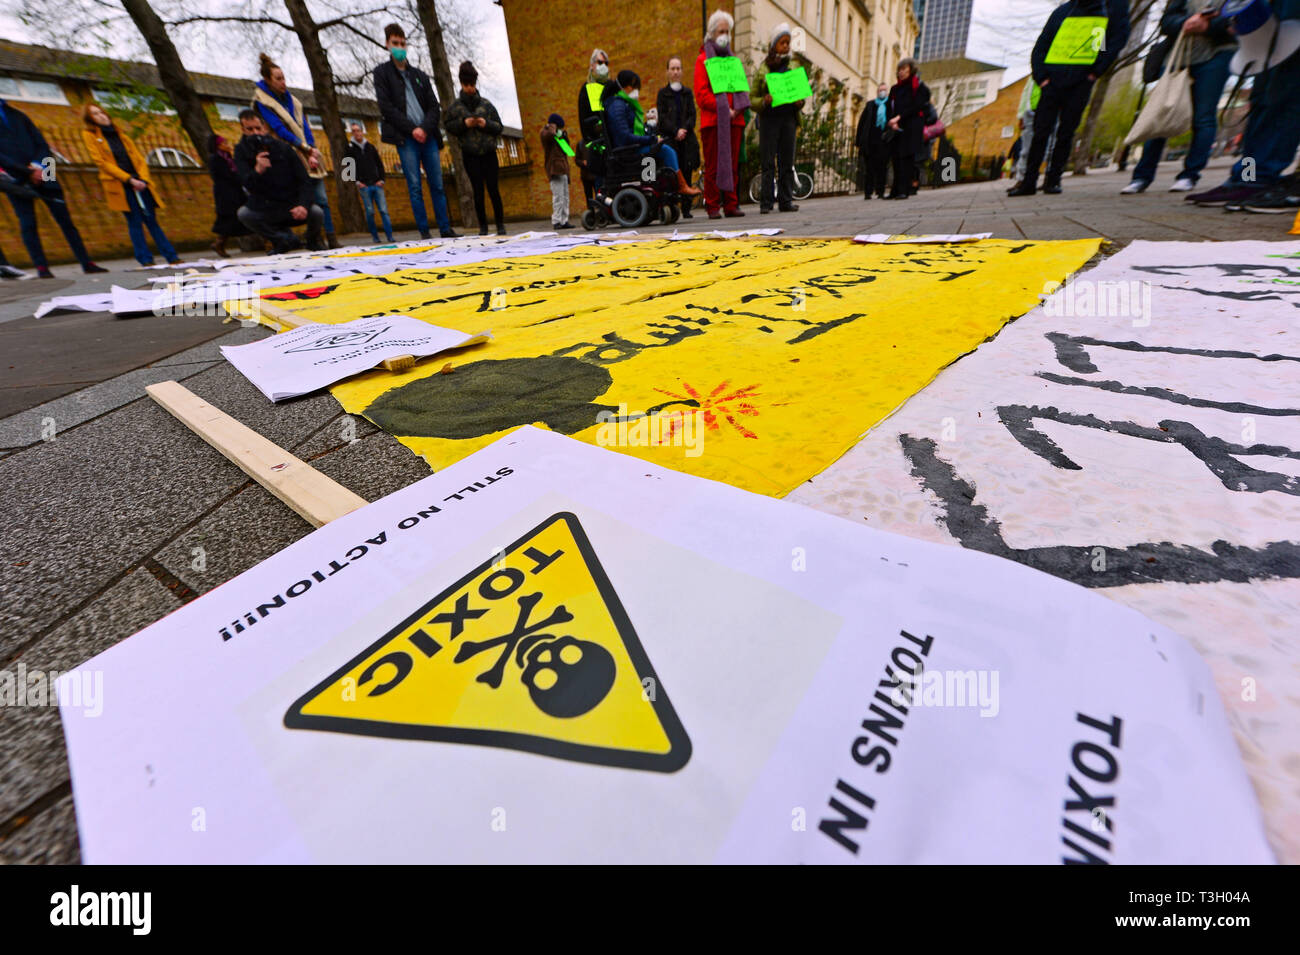 Crowds gather in west London to support a protest accusing authorities of lying after cancer-causing chemicals were found in soil close to Grenfell Tower. - Stock Image